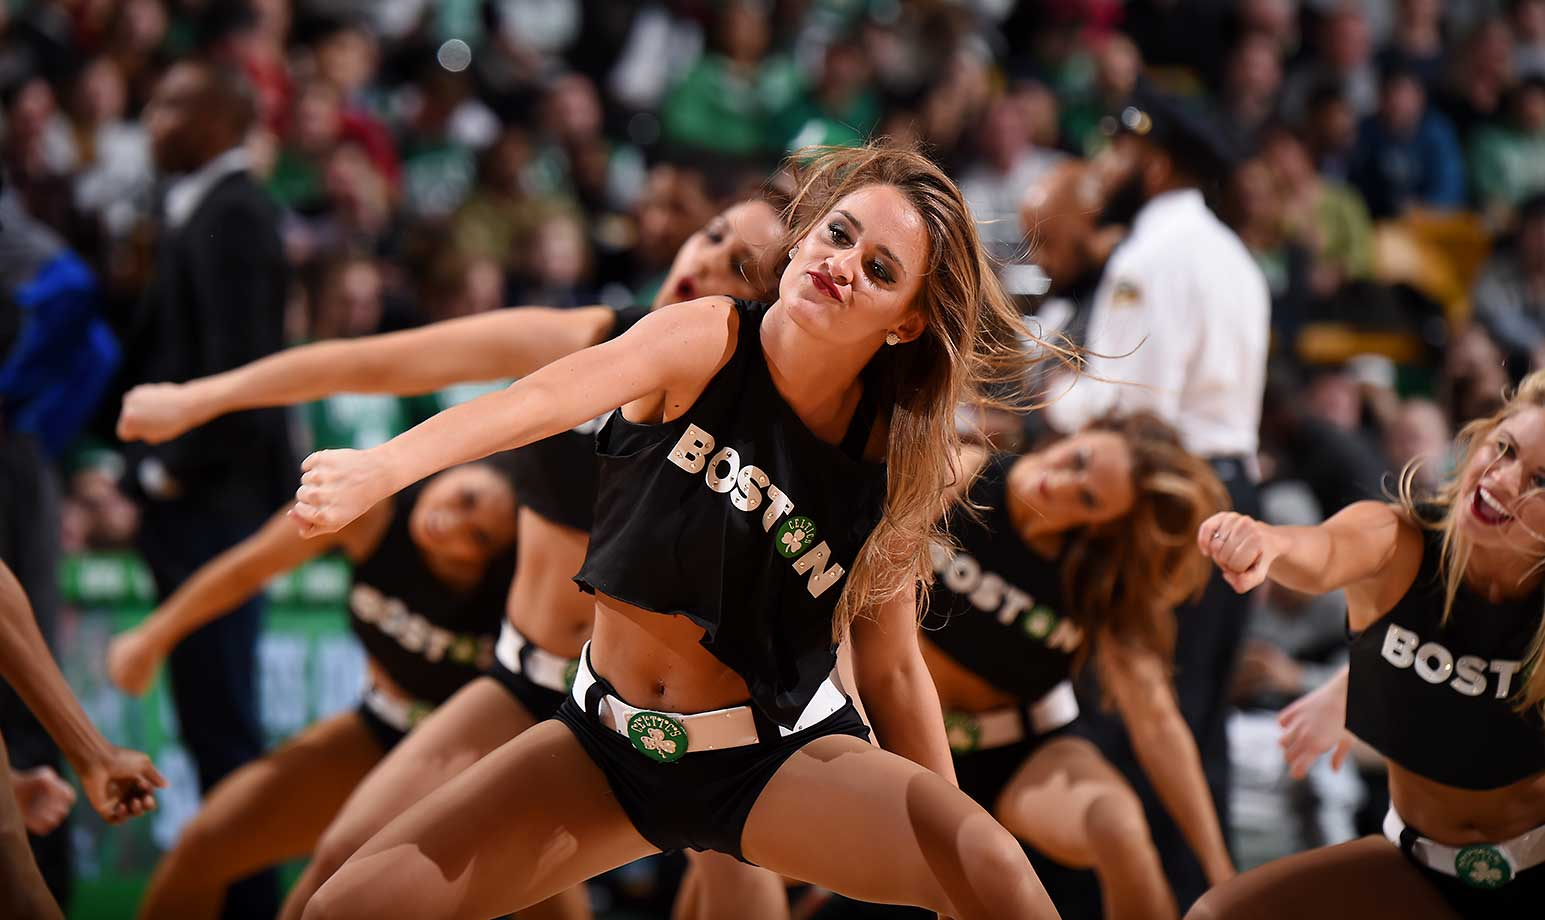 The Boston Celtics dance team is seen during the game against the Detroit Pistons at the TD Garden in Boston